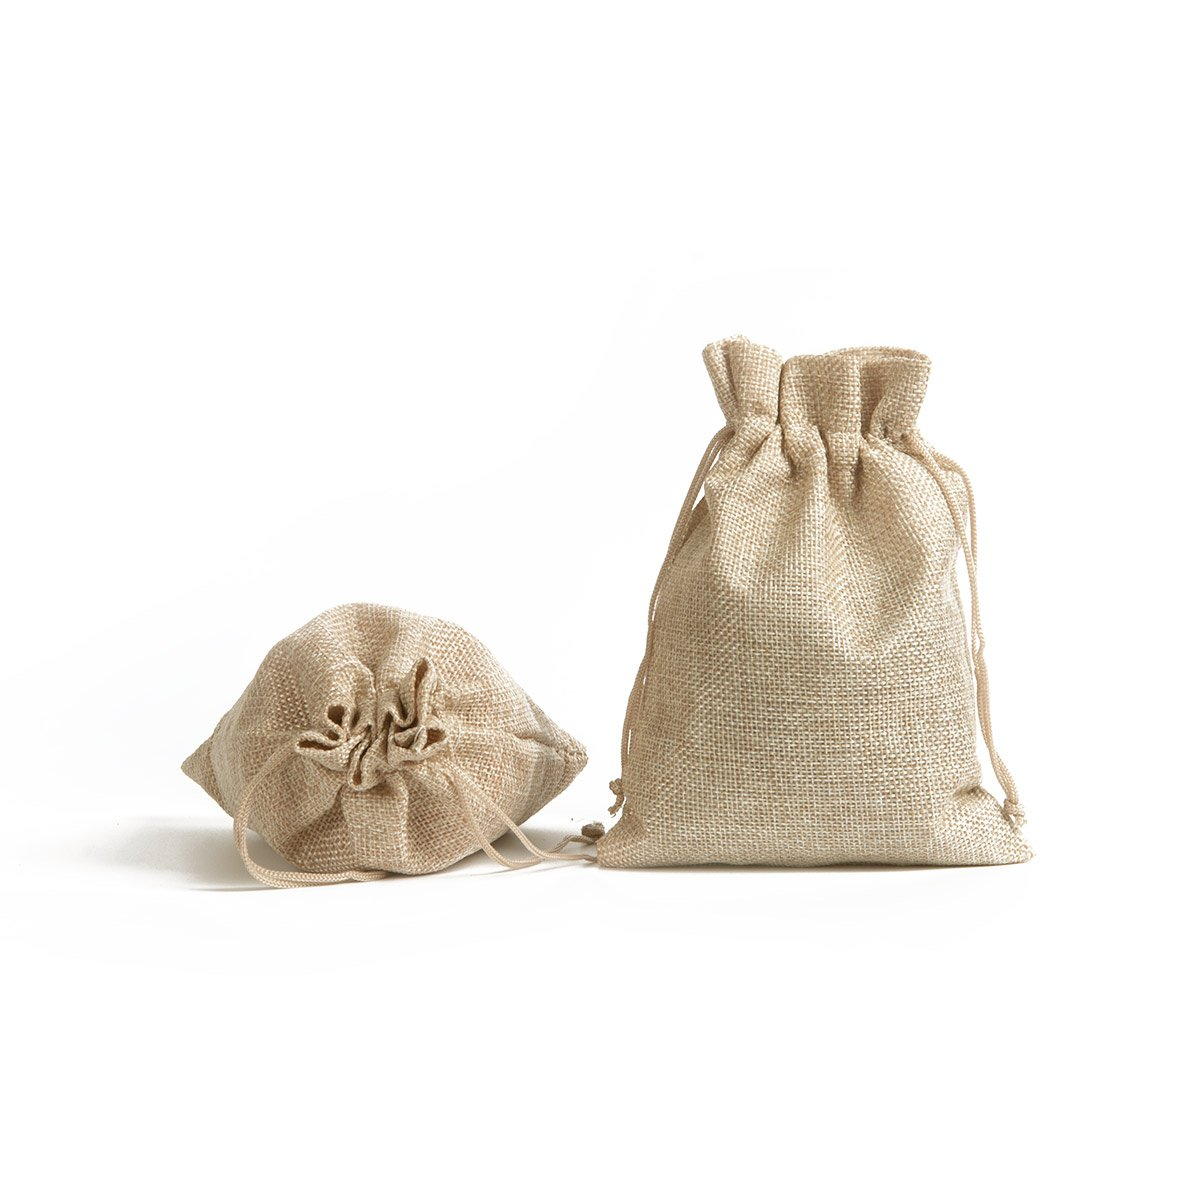 Luropa 30 pcs Burlap Bag 7.1 x 5.1 Christmas and DIY Craft Gift Bags with Drawstring Jewelry Pouches Sacks and Cotton Lining for Wedding